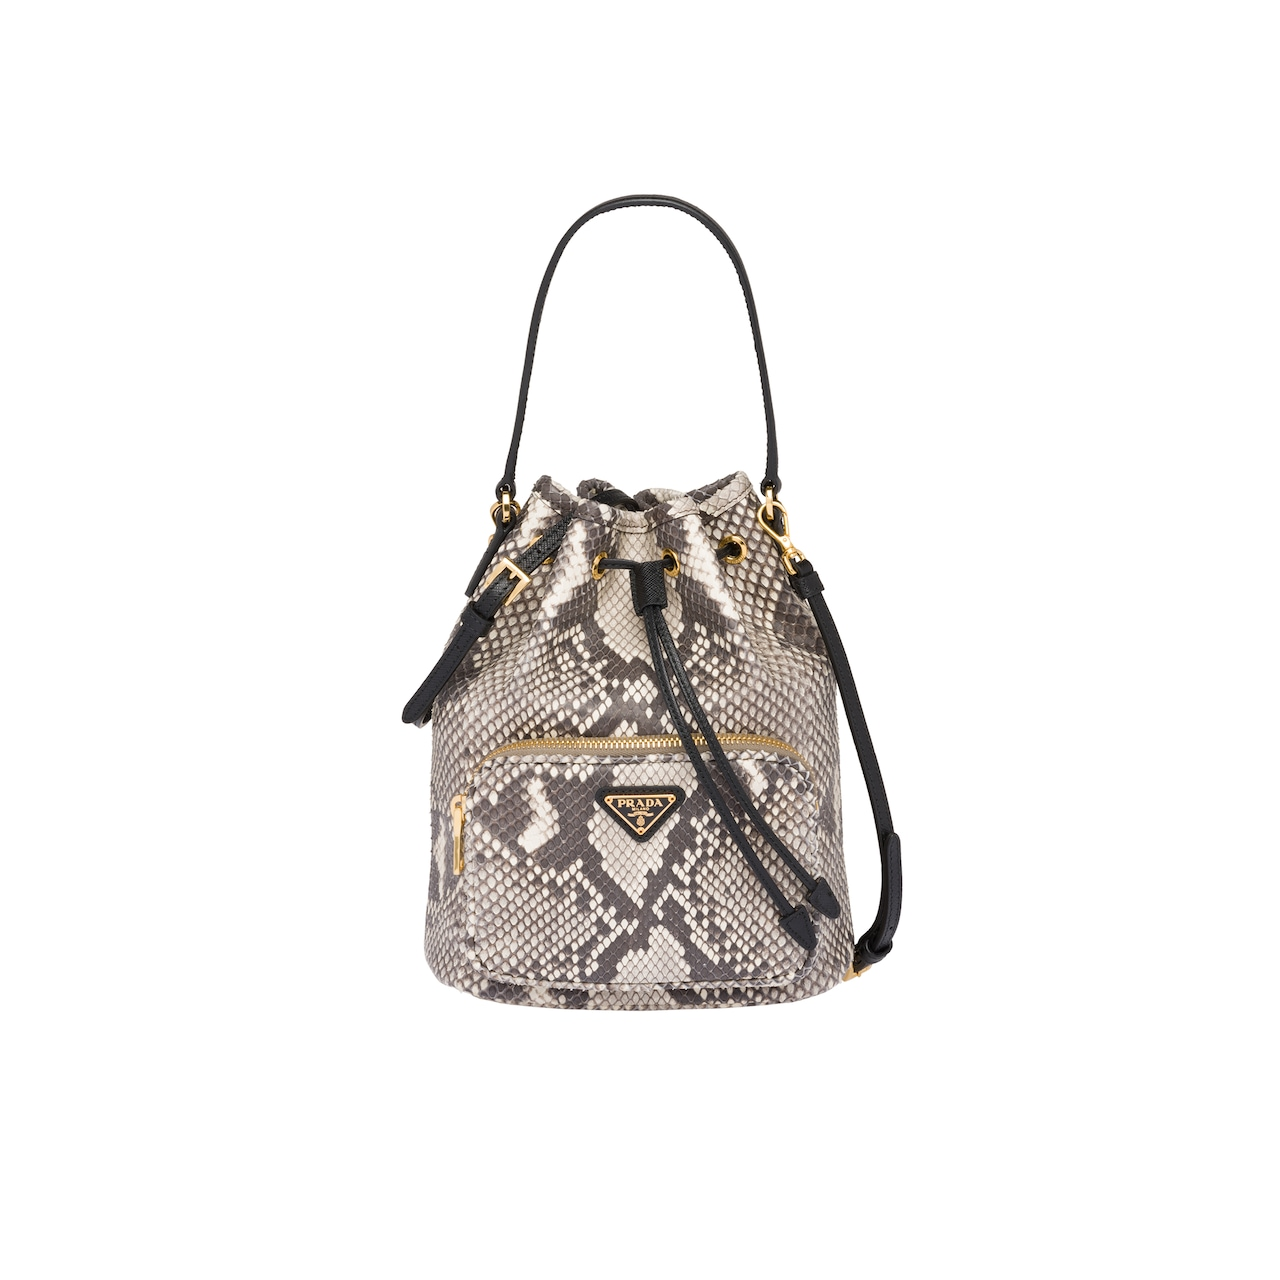 15c2029afc0a Python and Saffiano leather bucket bag